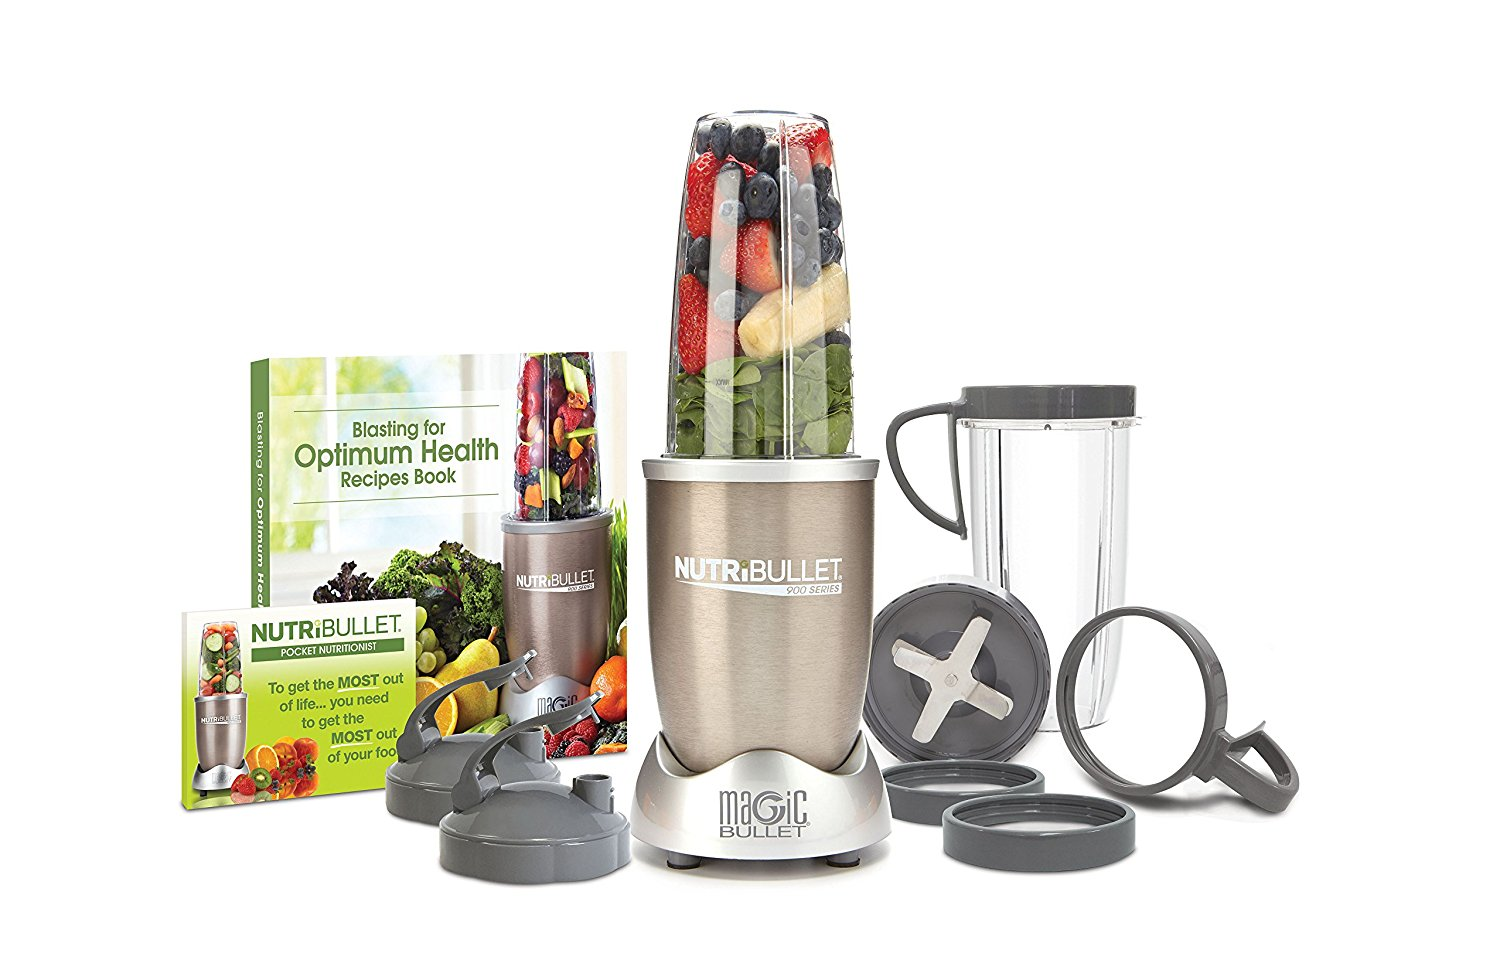 NutriBullet Pro - 13-Piece High-Speed Blender Mixer System